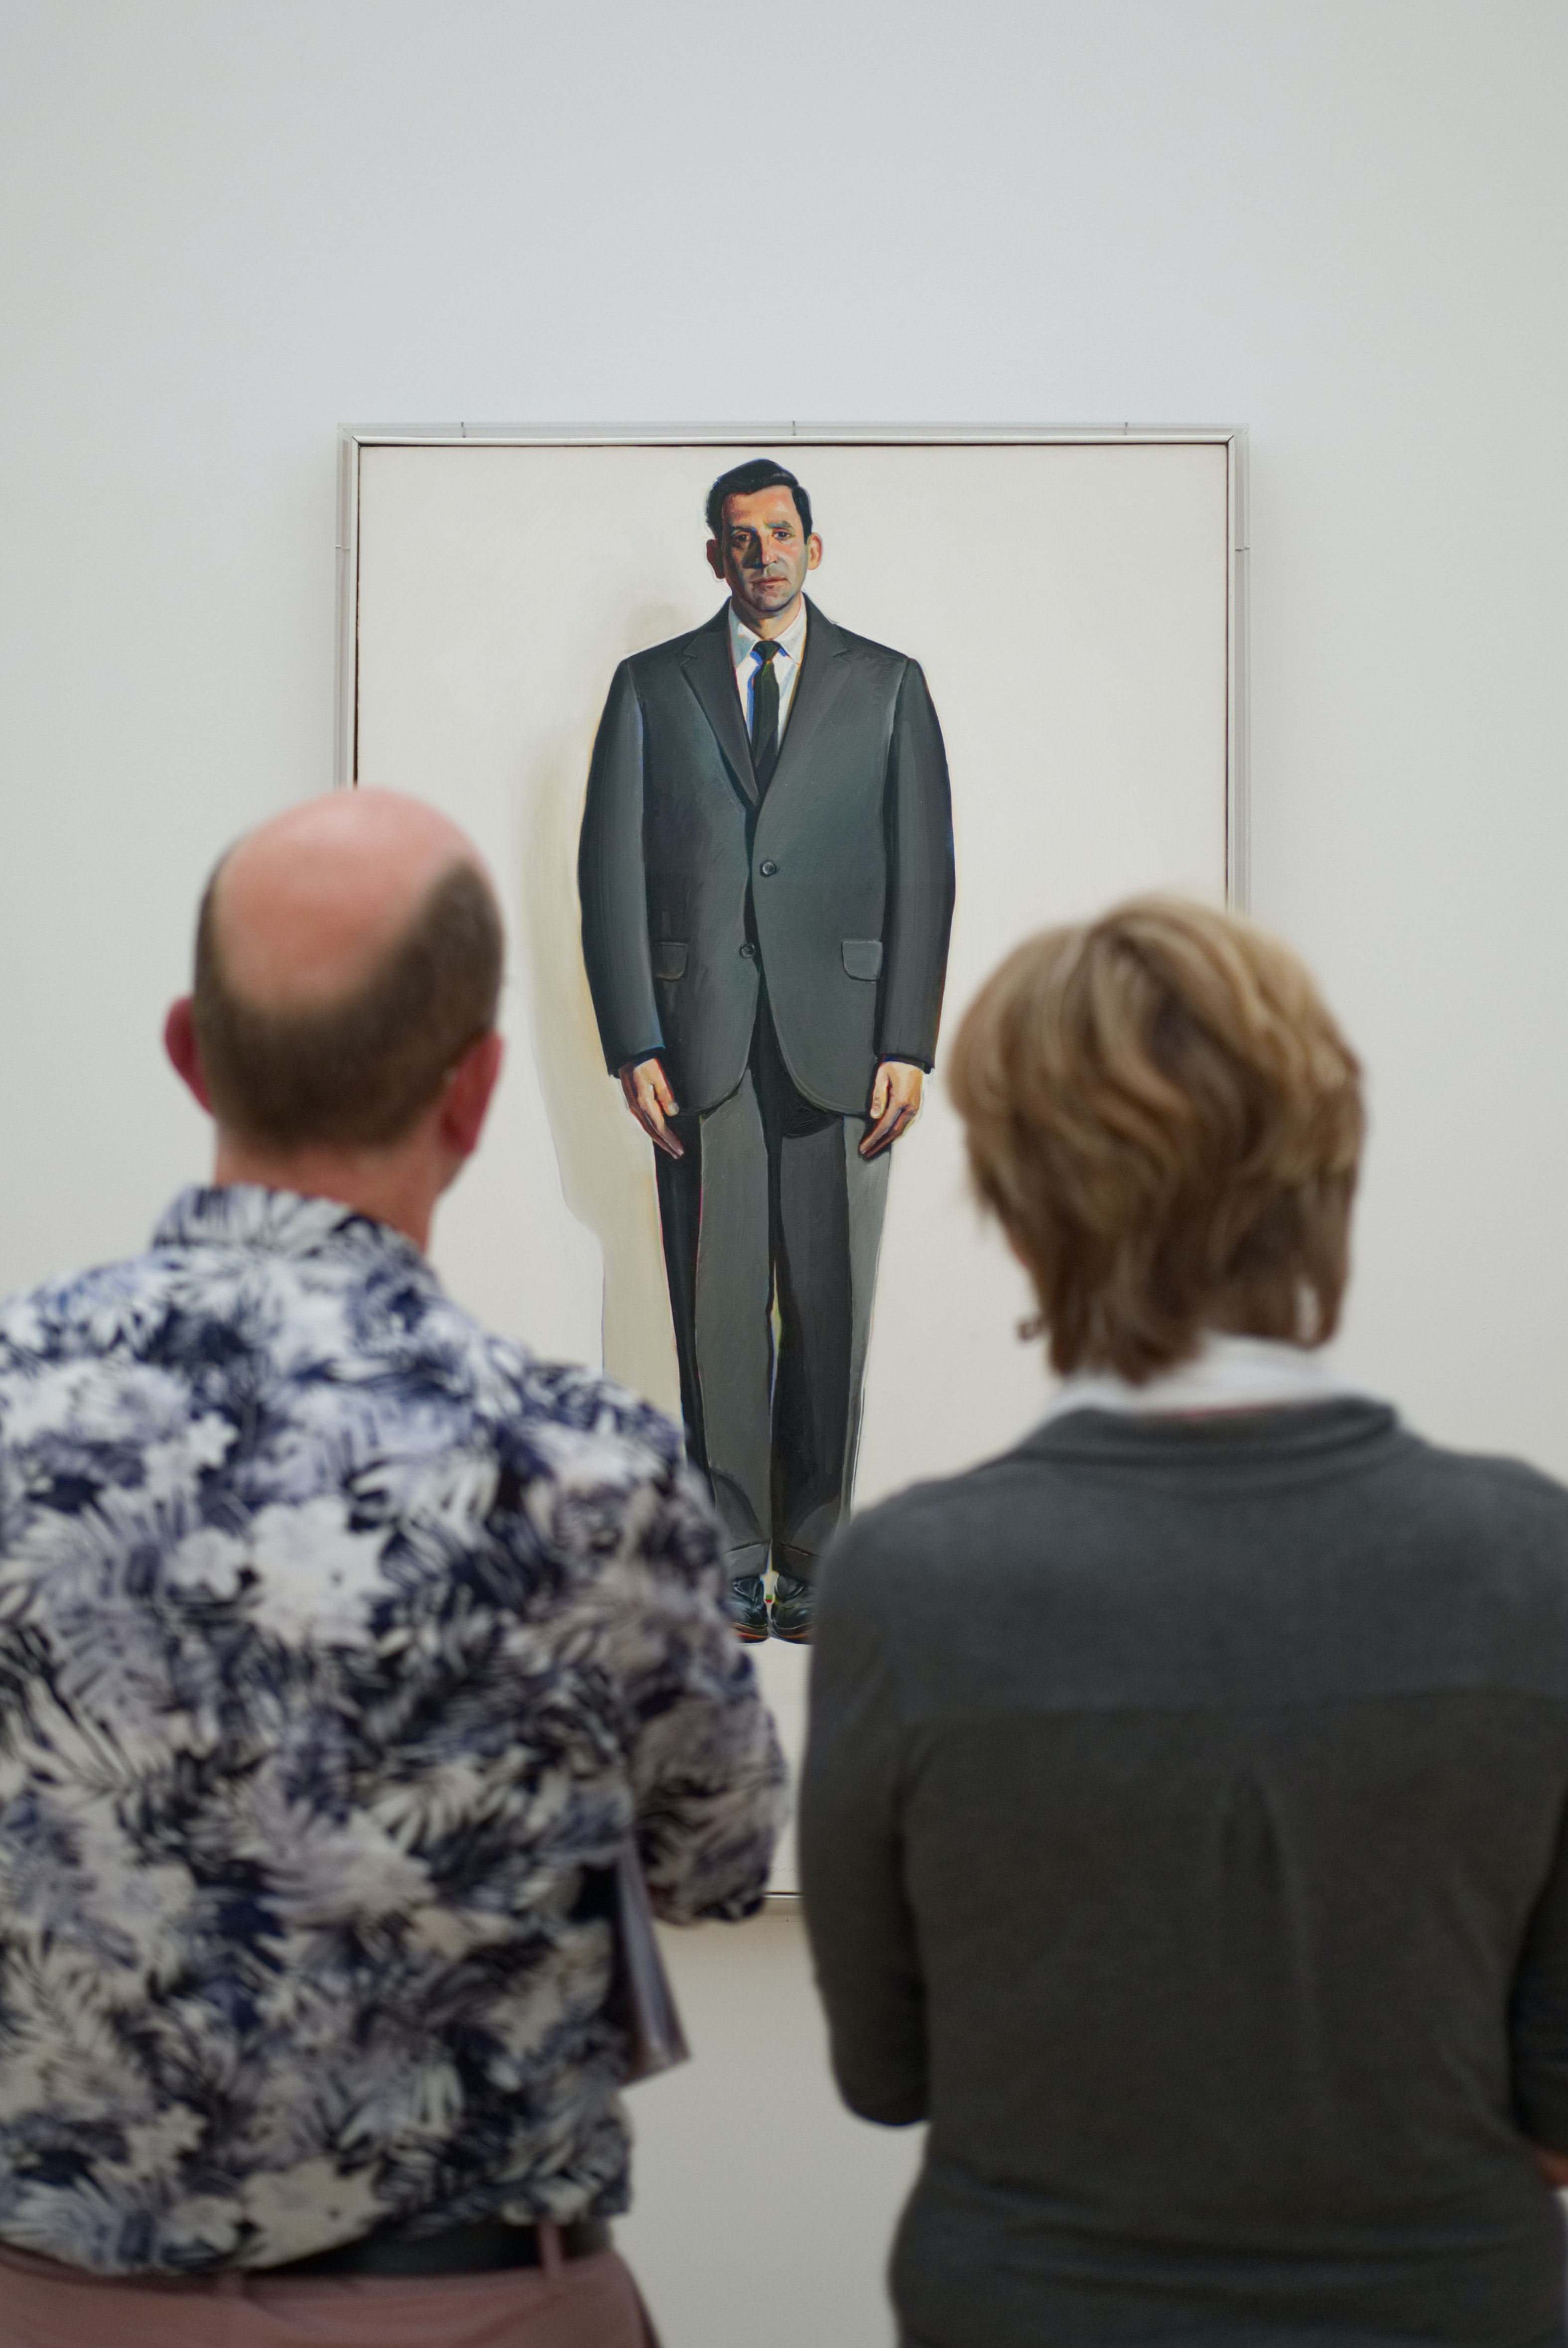 two man standing in front of the painting